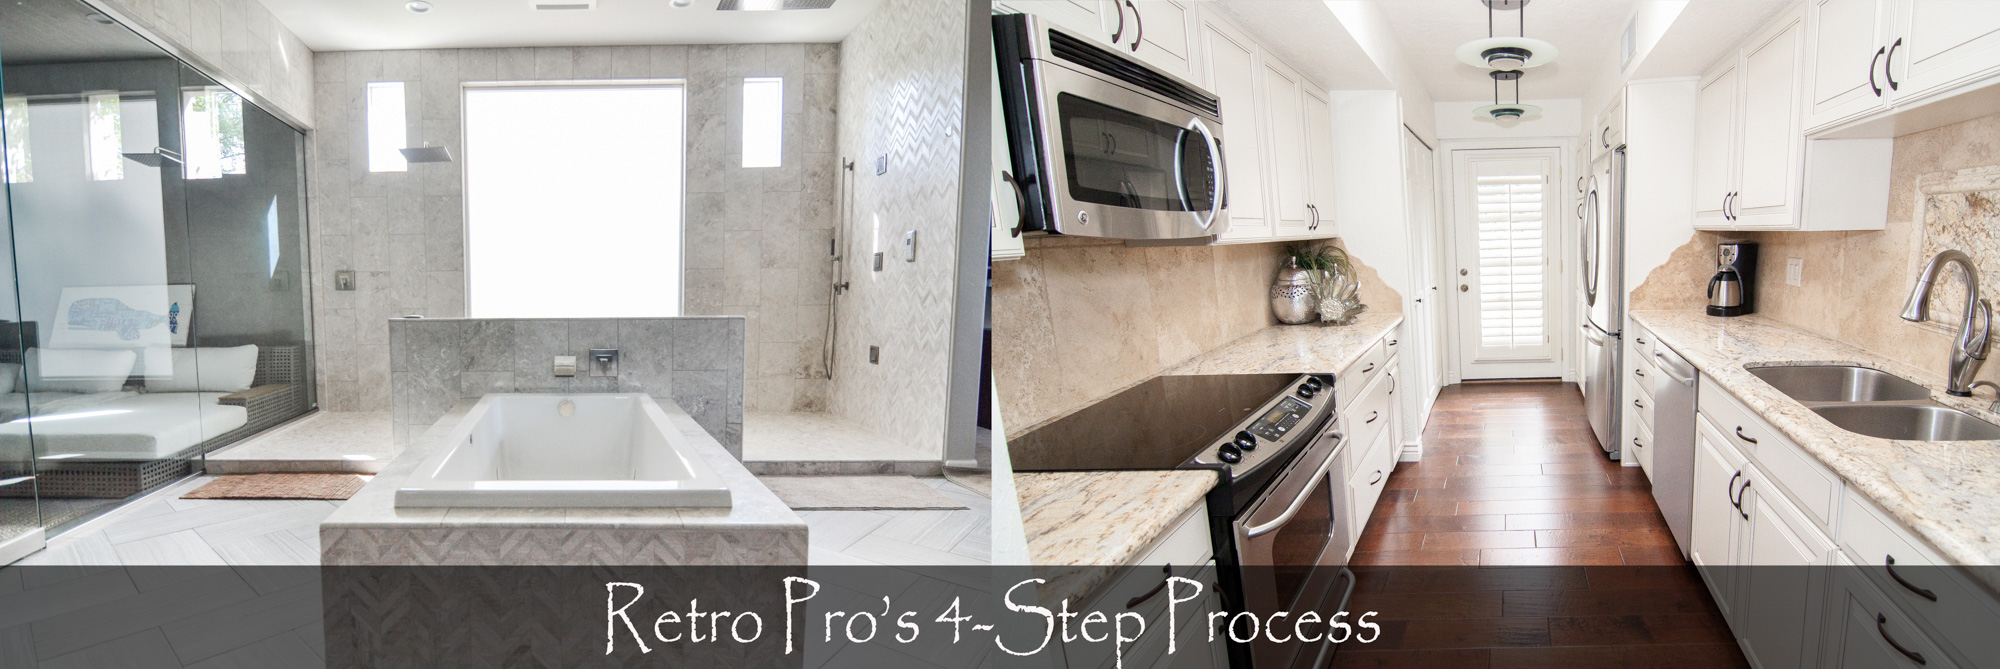 Our remodeling process